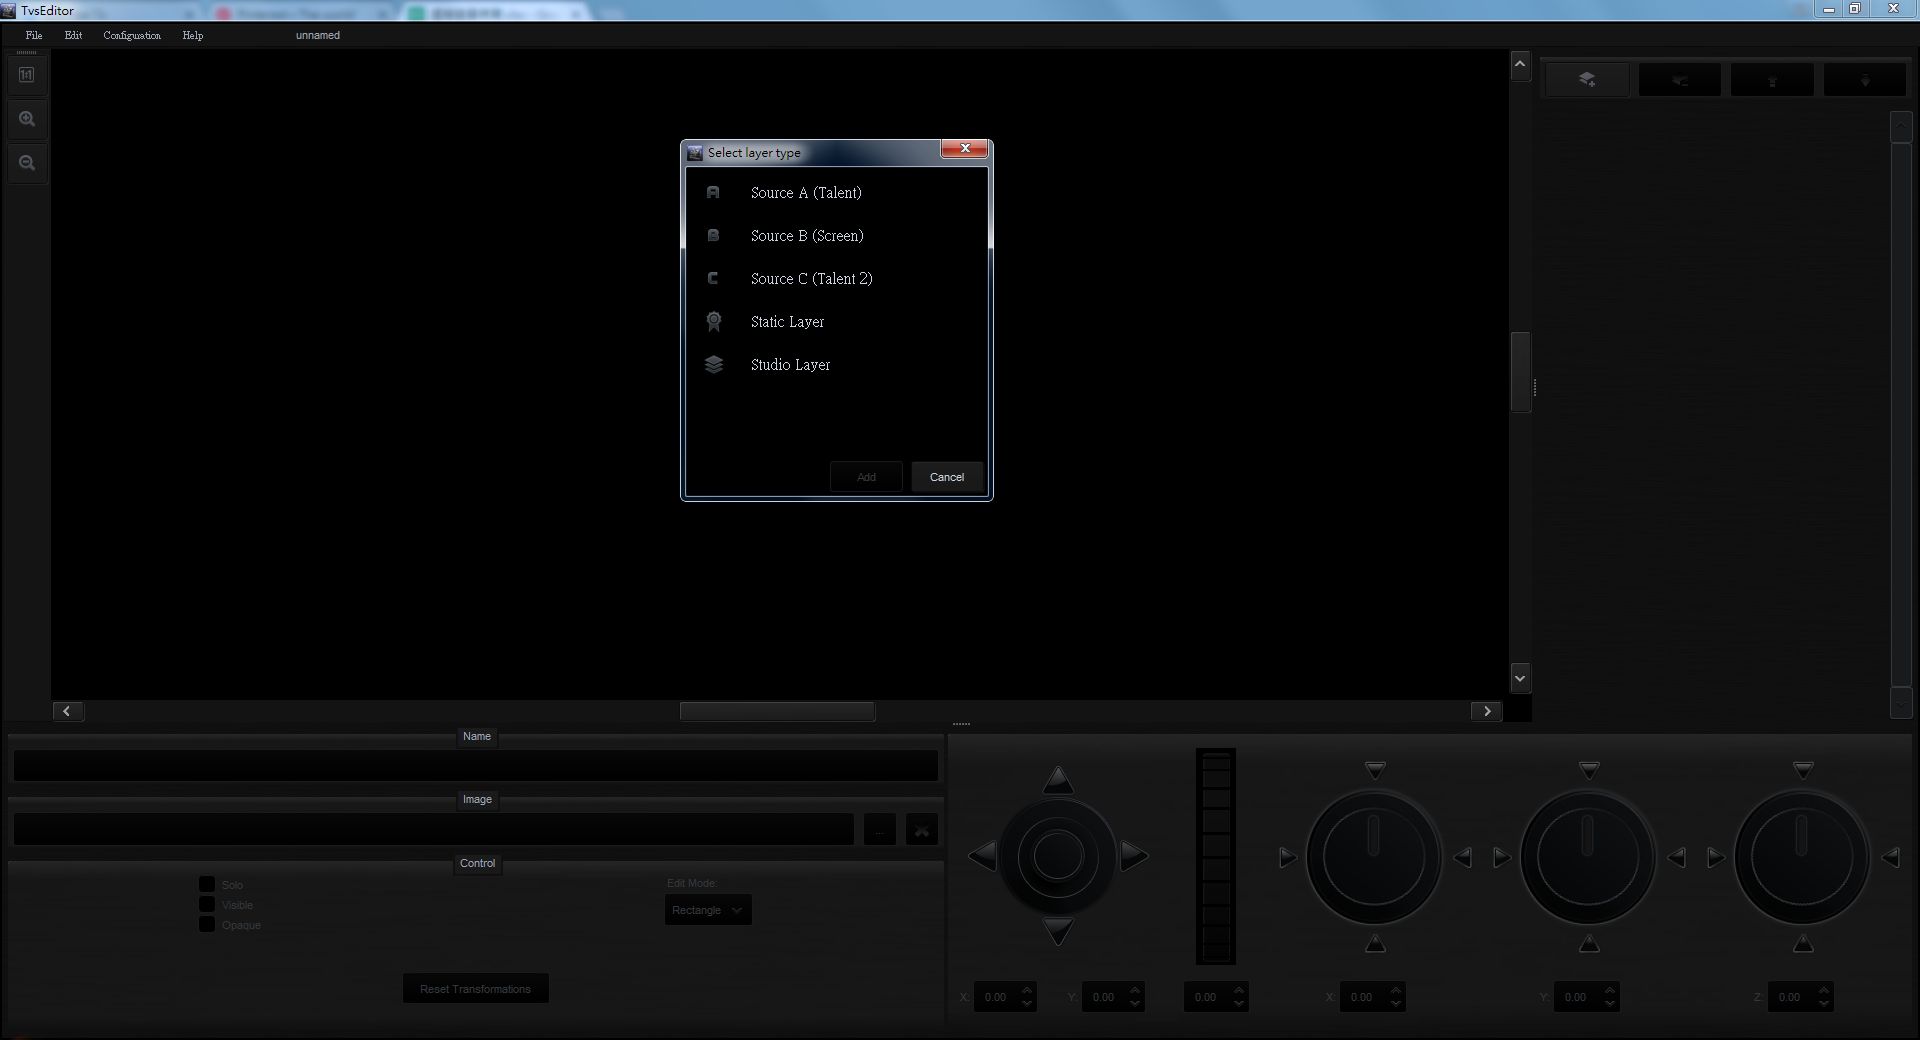 Virtualset Maker